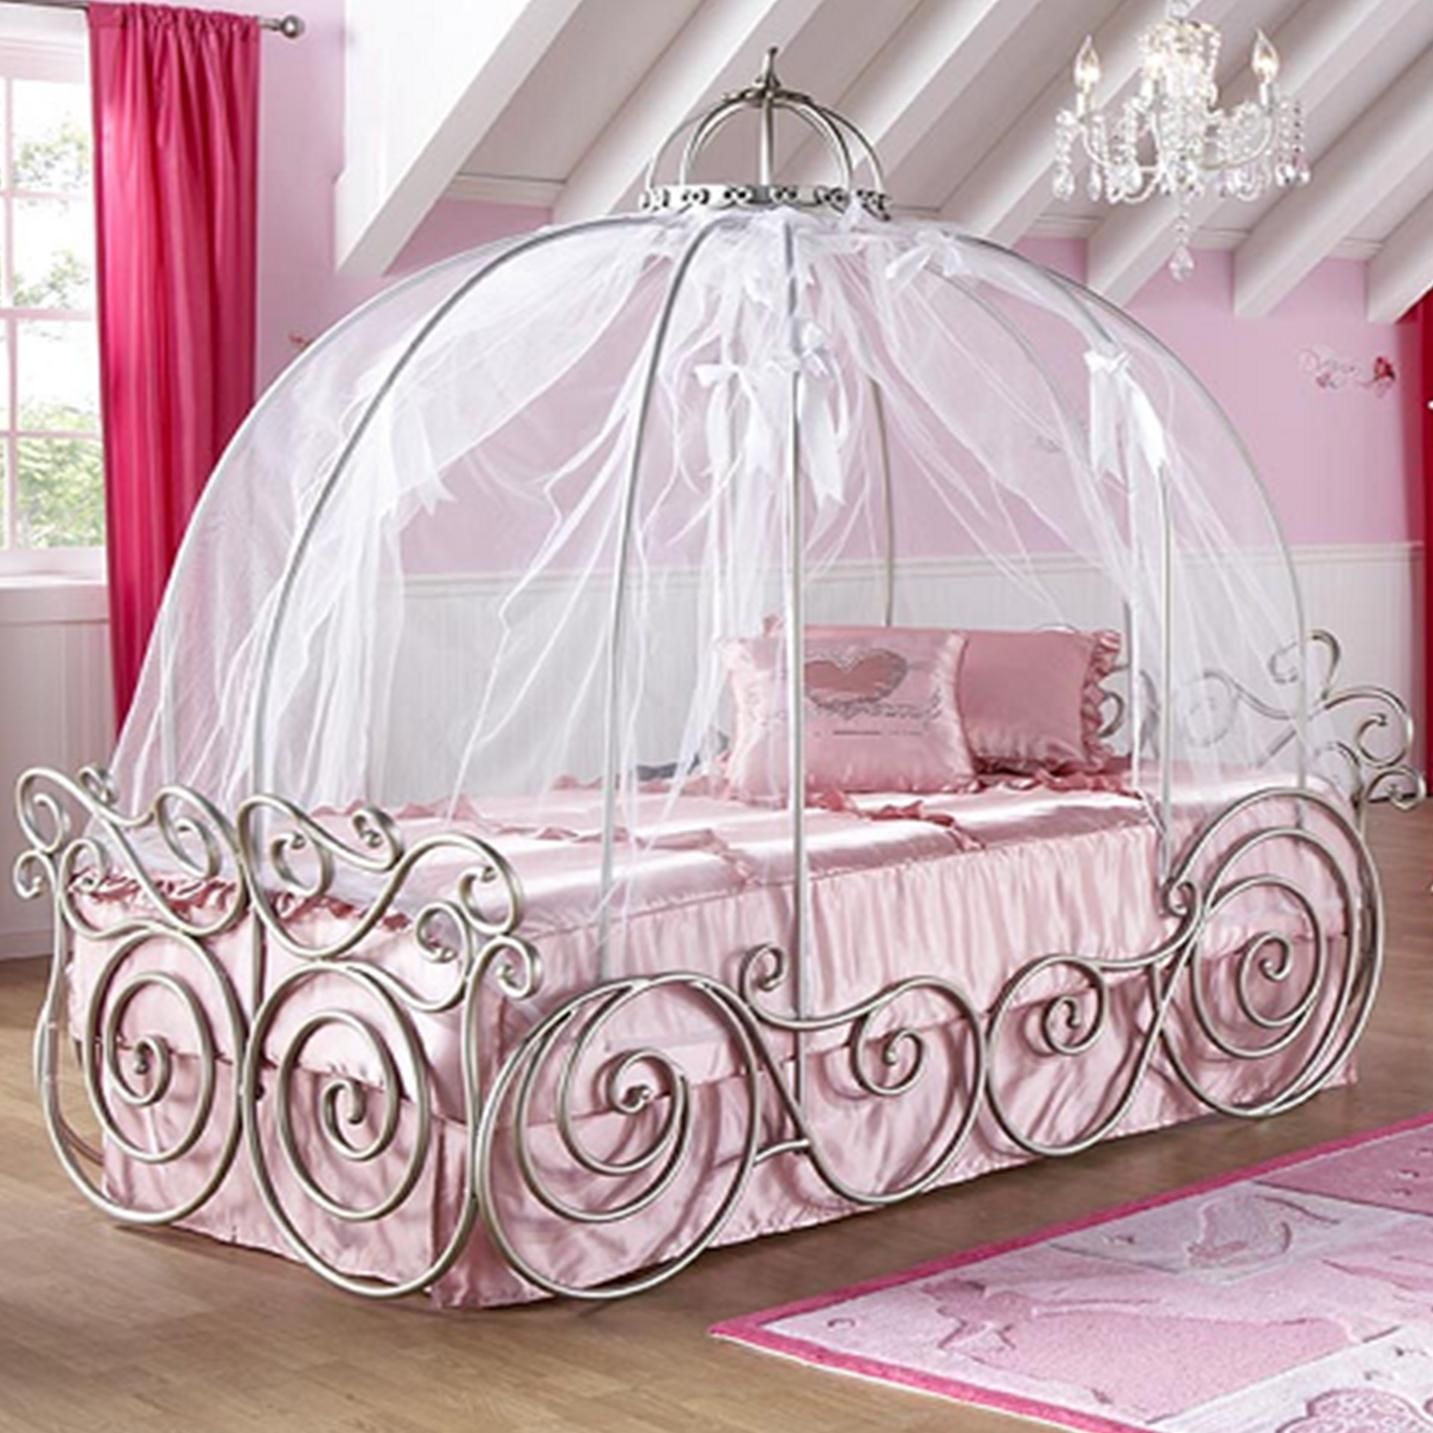 Amazing Design Of Princess Canopy Bed With White Silk